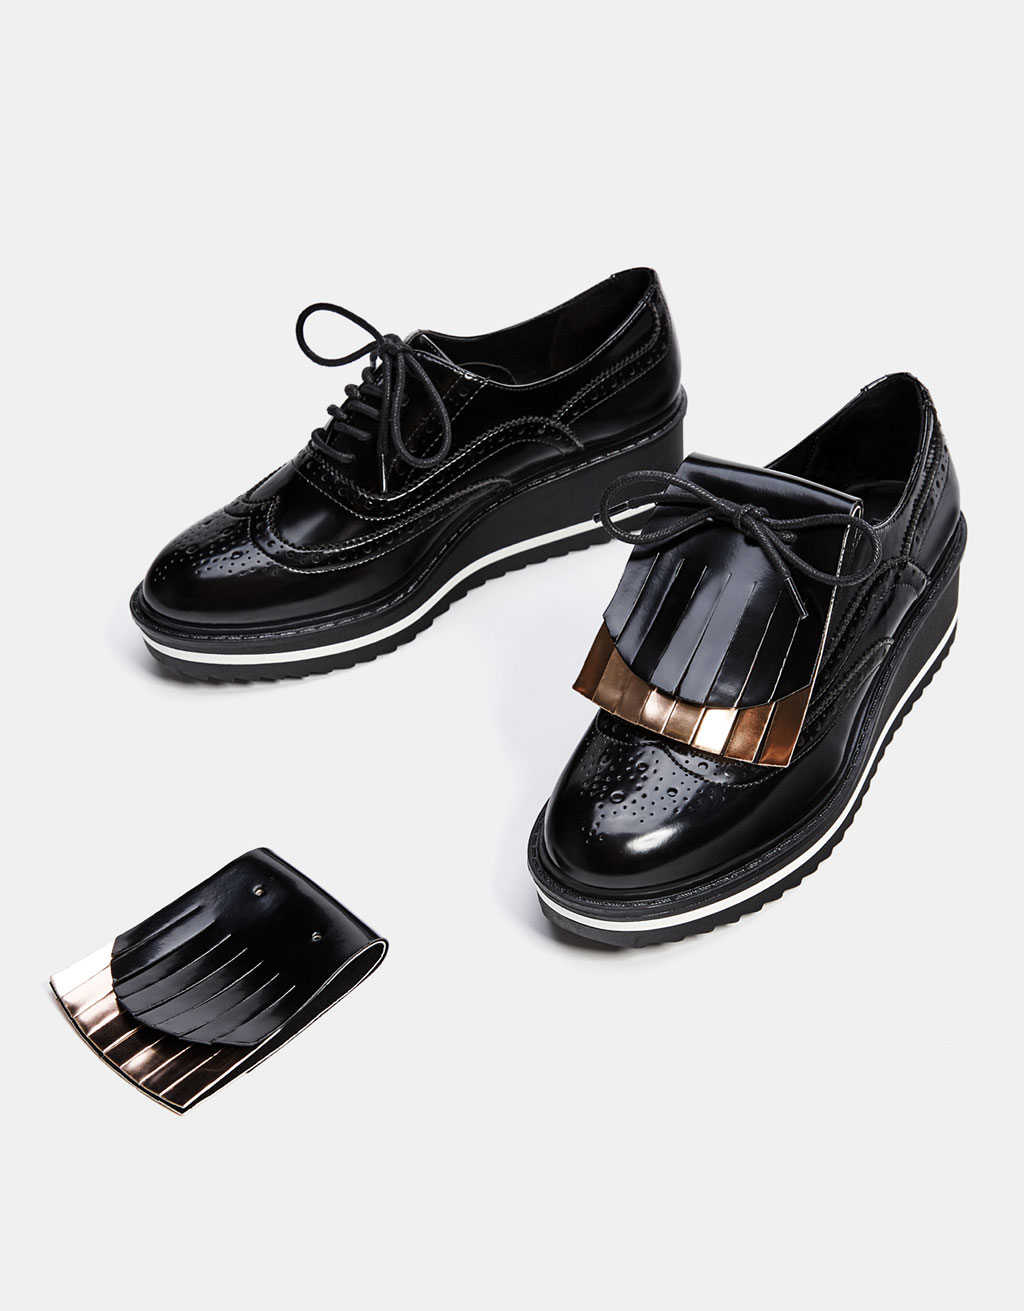 Platform brogues with a removable, interchangeable foldover tongue